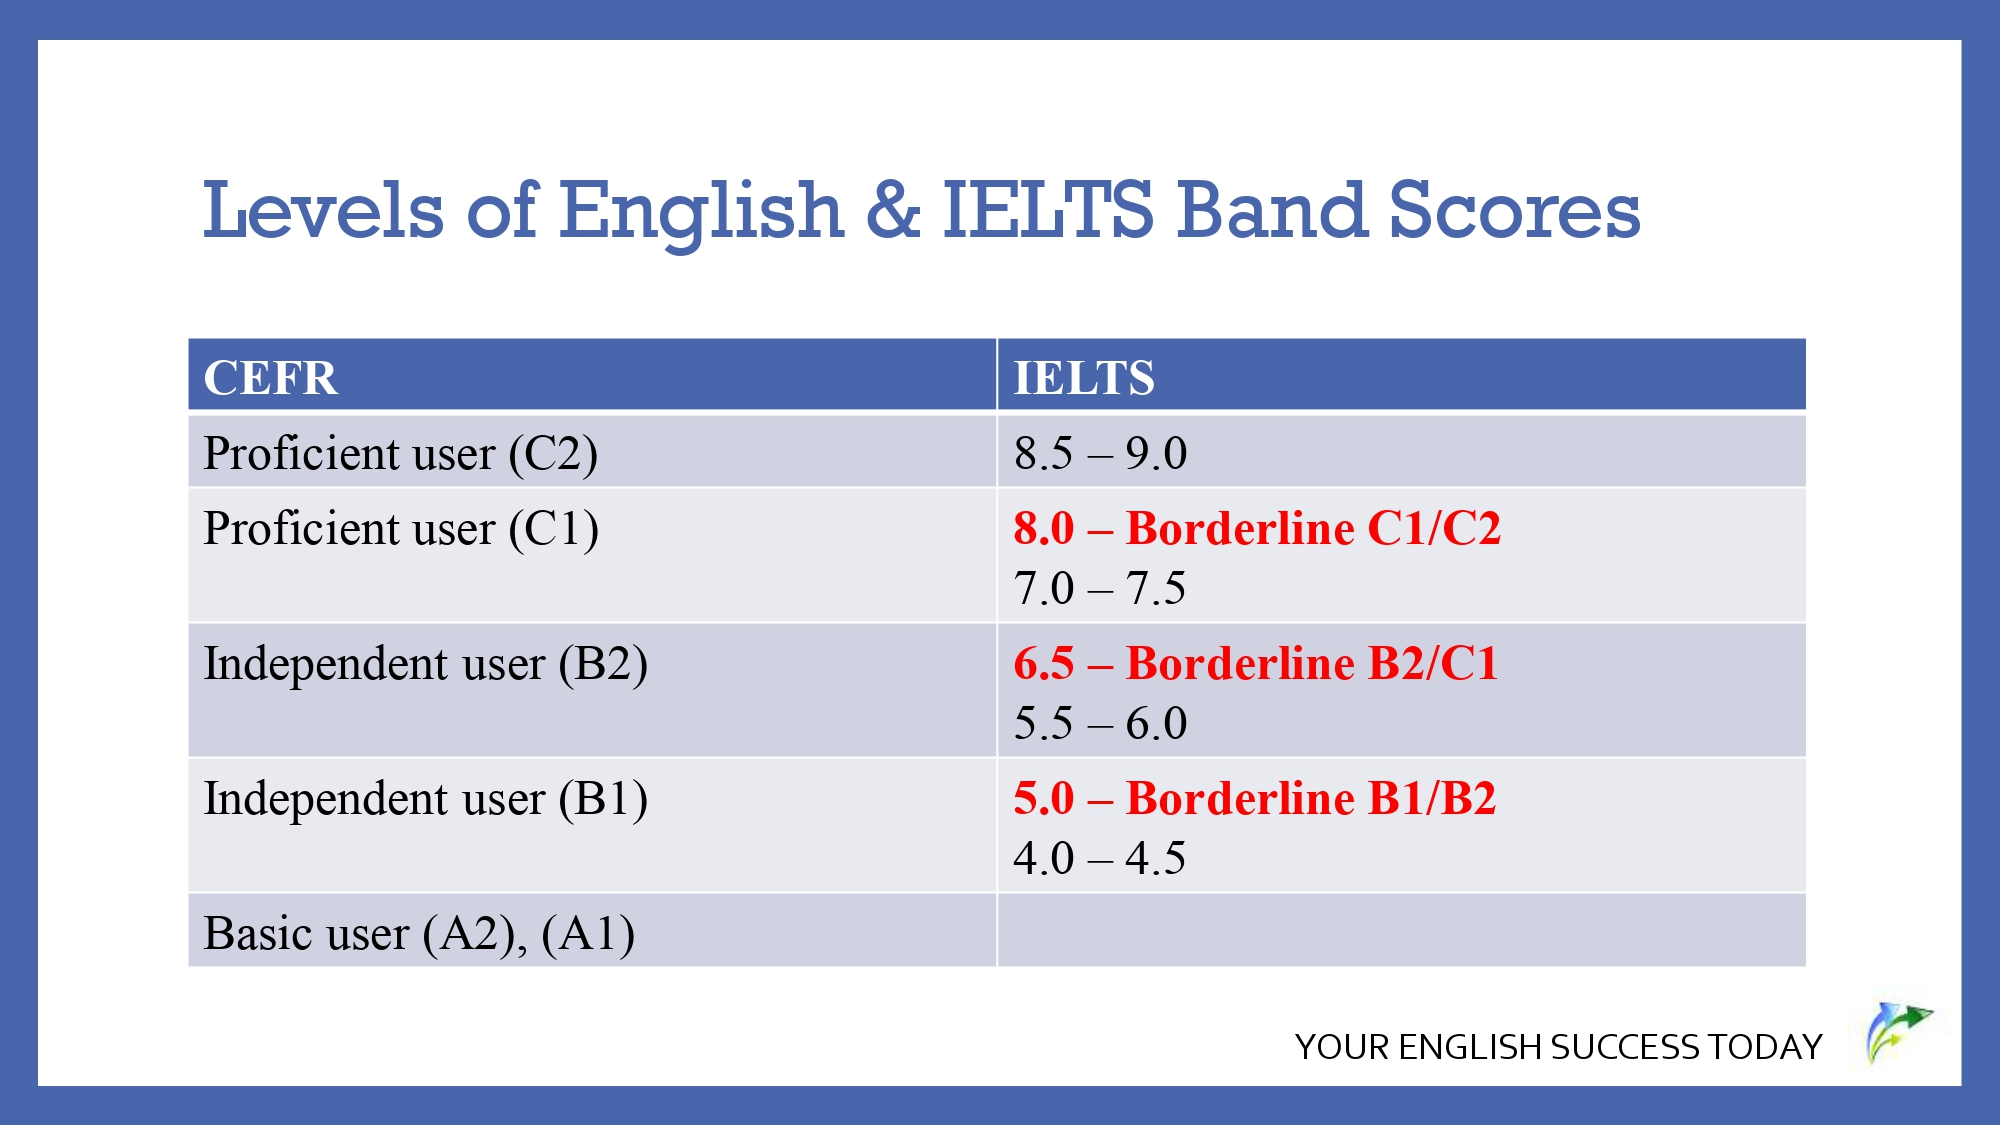 Levels of English & IELTS Band Scores